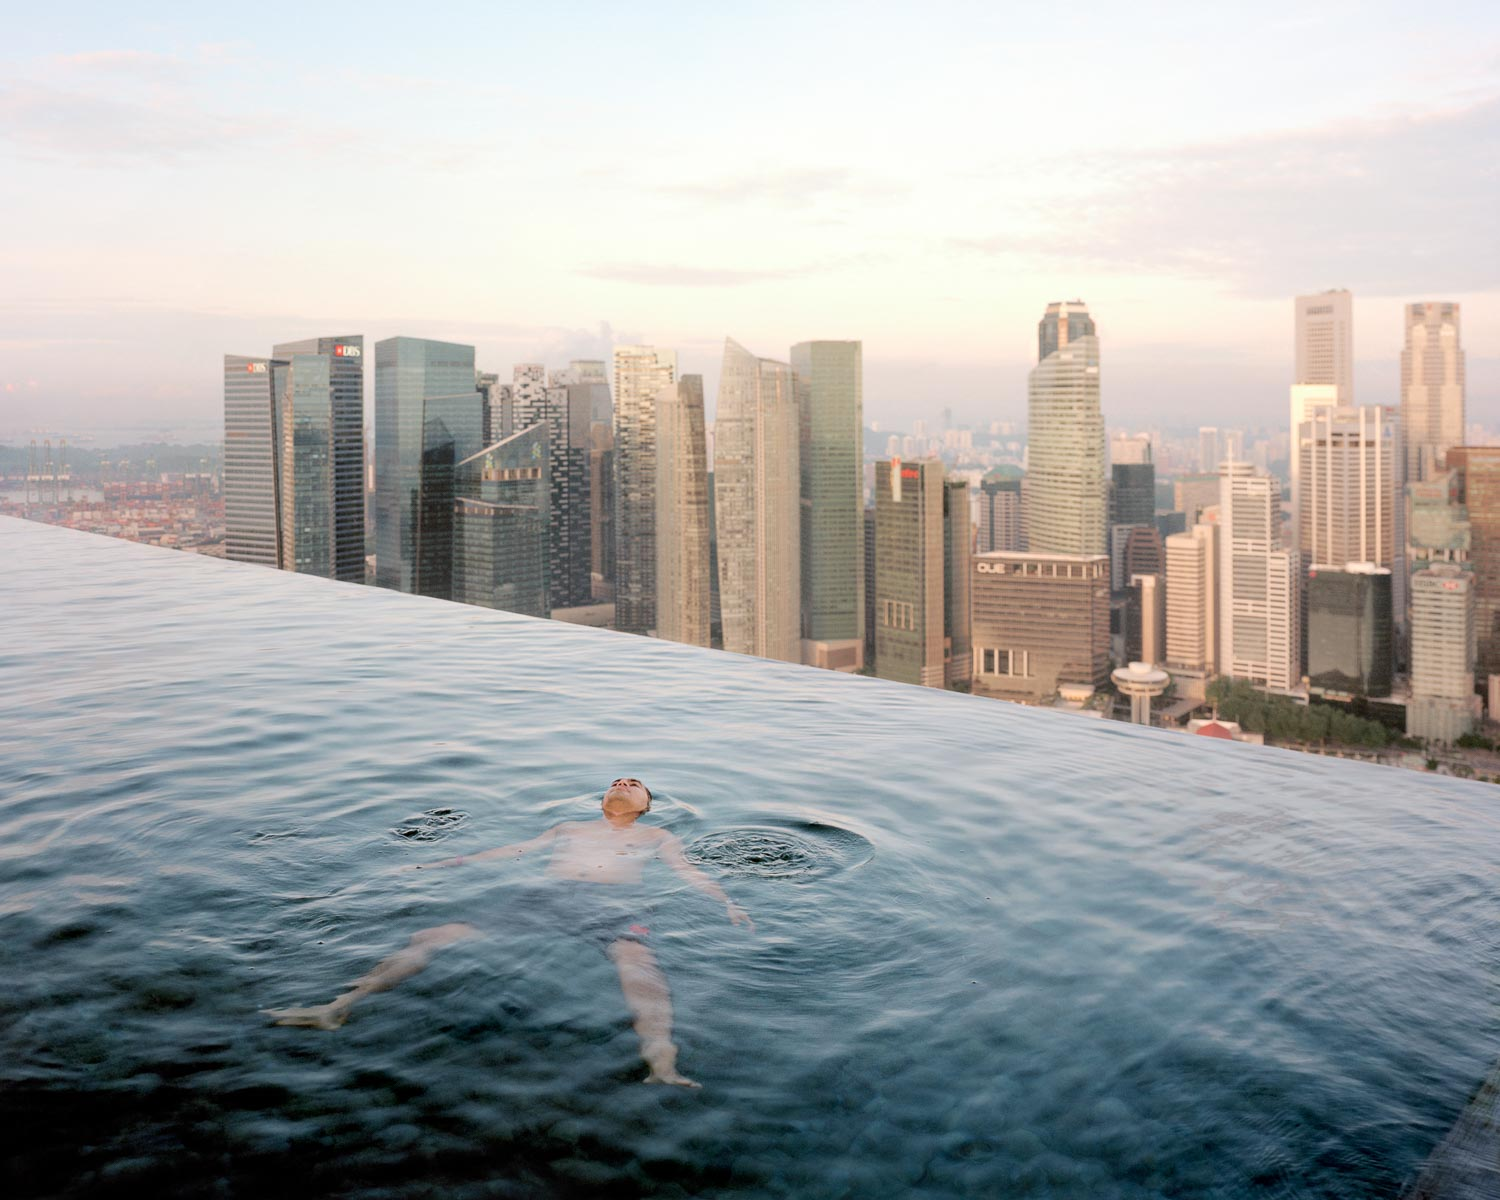 A man floats in the 57th-floor swimming pool of the Marina Bay Sands Hotel, with the skyline of the Singapore financial district behind him. 2013 Paolo Woods & Gabriele Galimberti - INSTITUTE